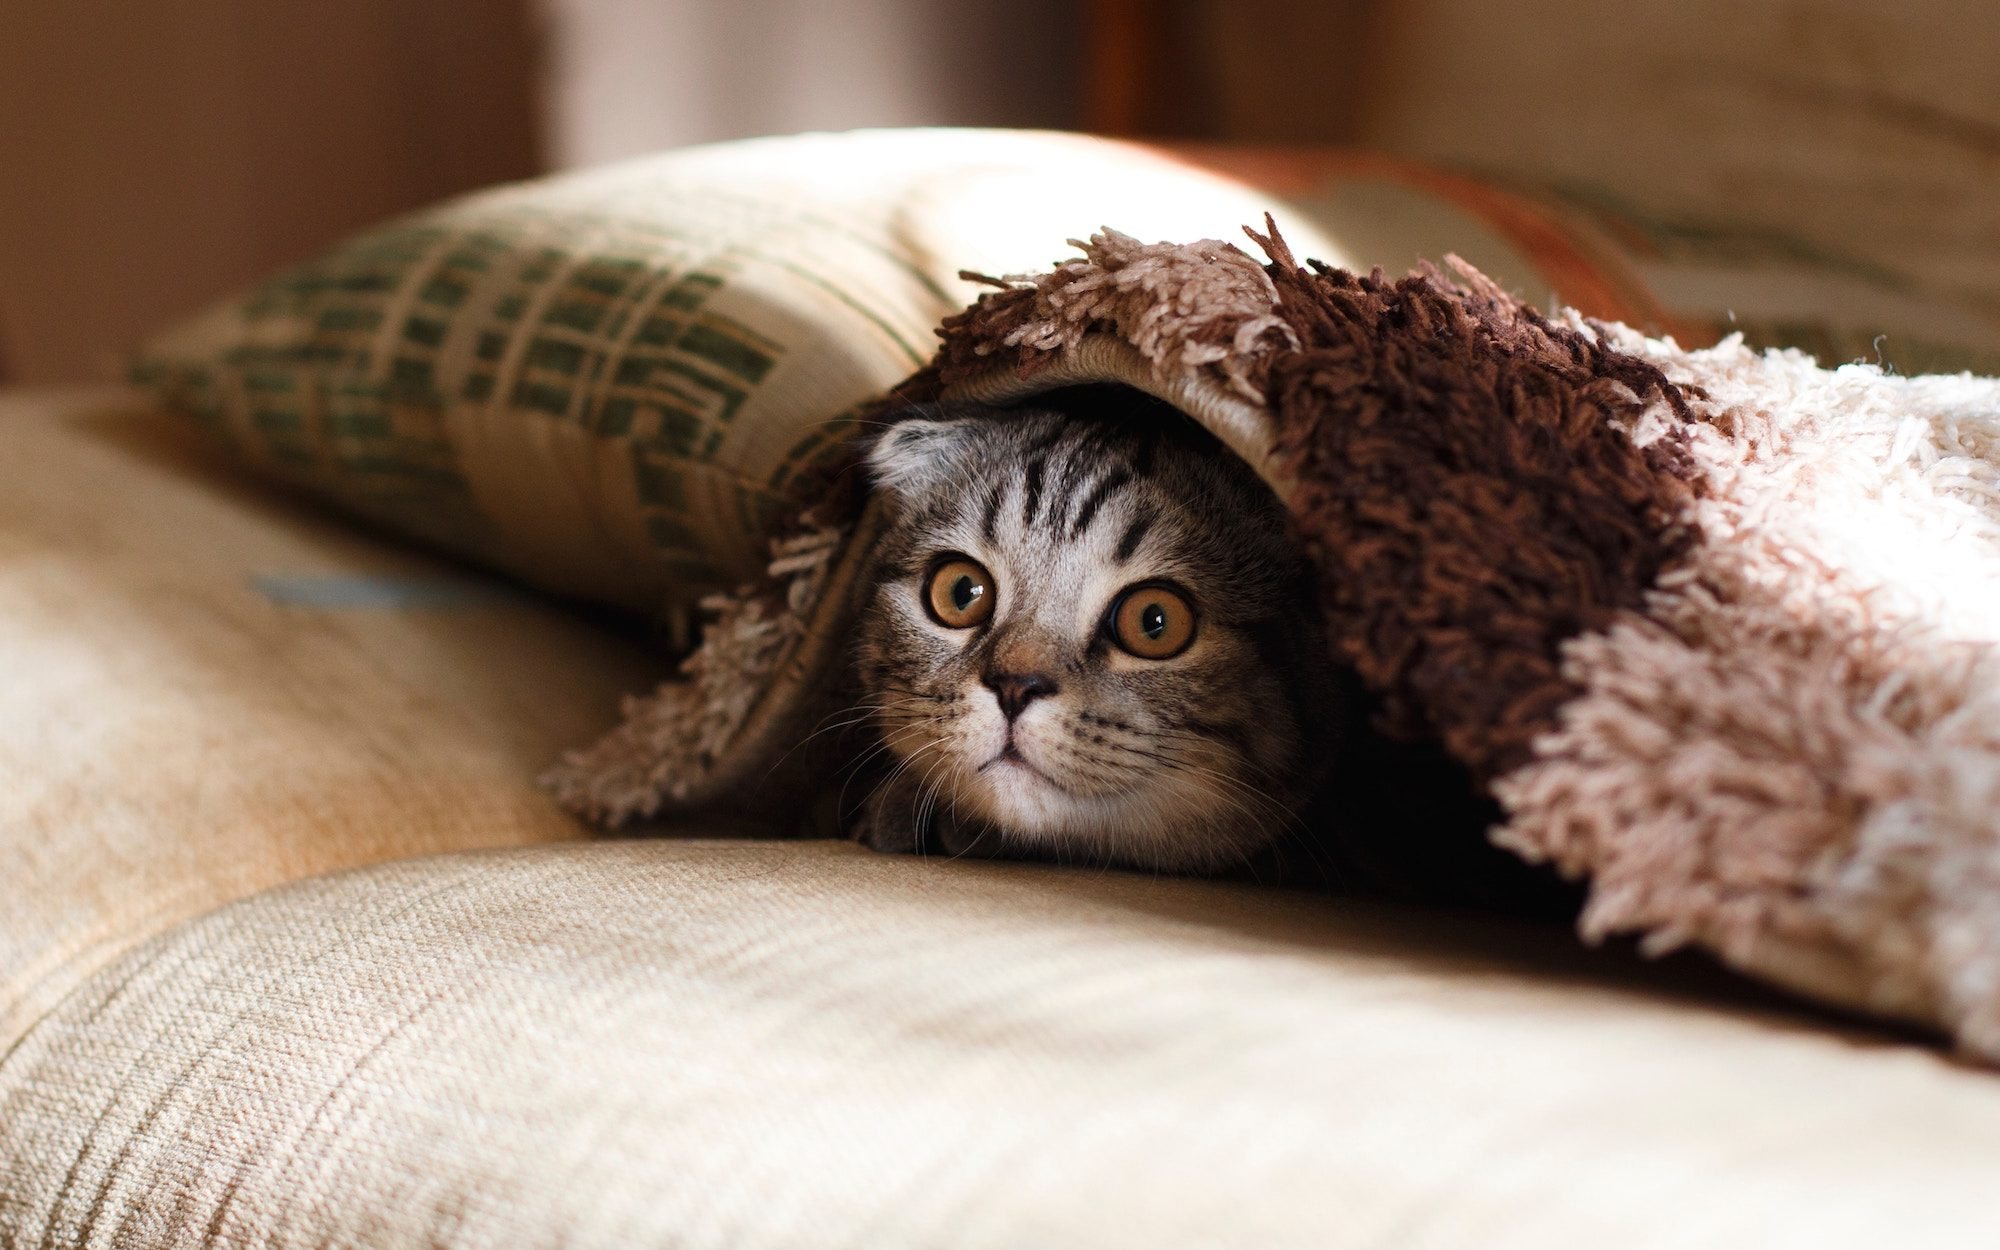 A cute striped grey cat with its head and large round caramel-colored eyes peeking out from under a blanket.